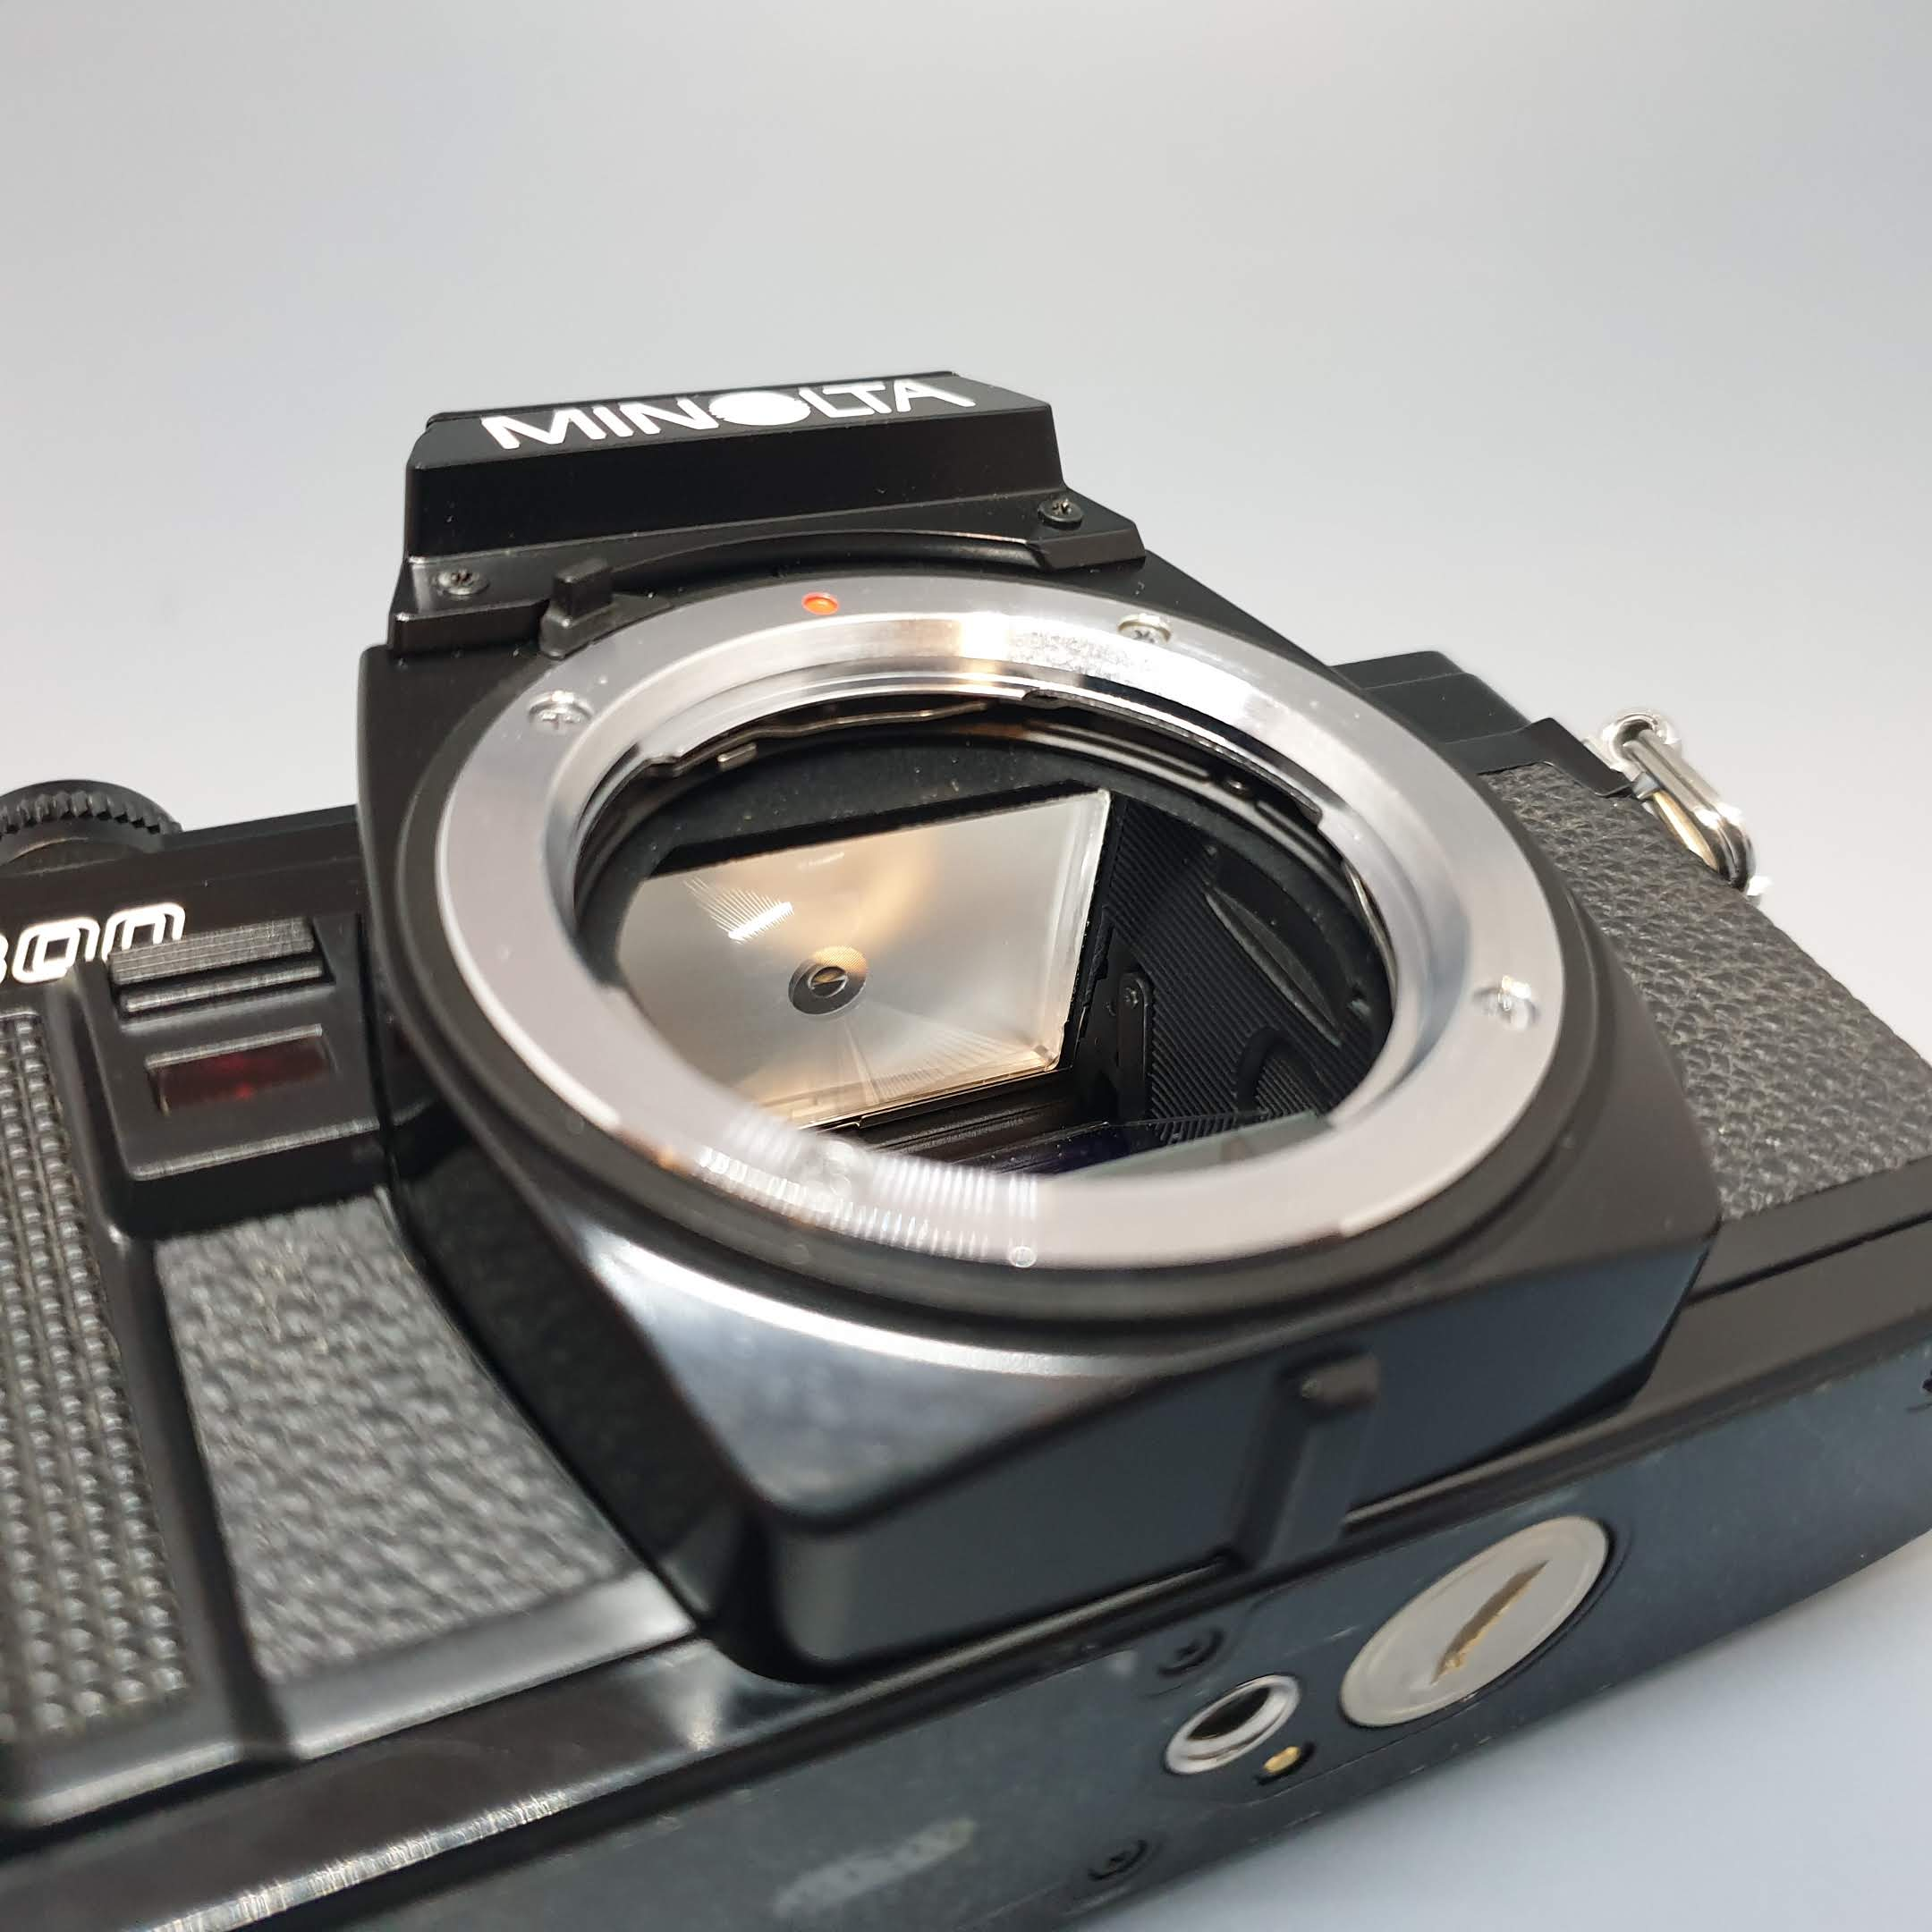 Minolta X300 Black with 50mm 1.7 MC Rokkor-PF lens - Greenwich Cameras and Film